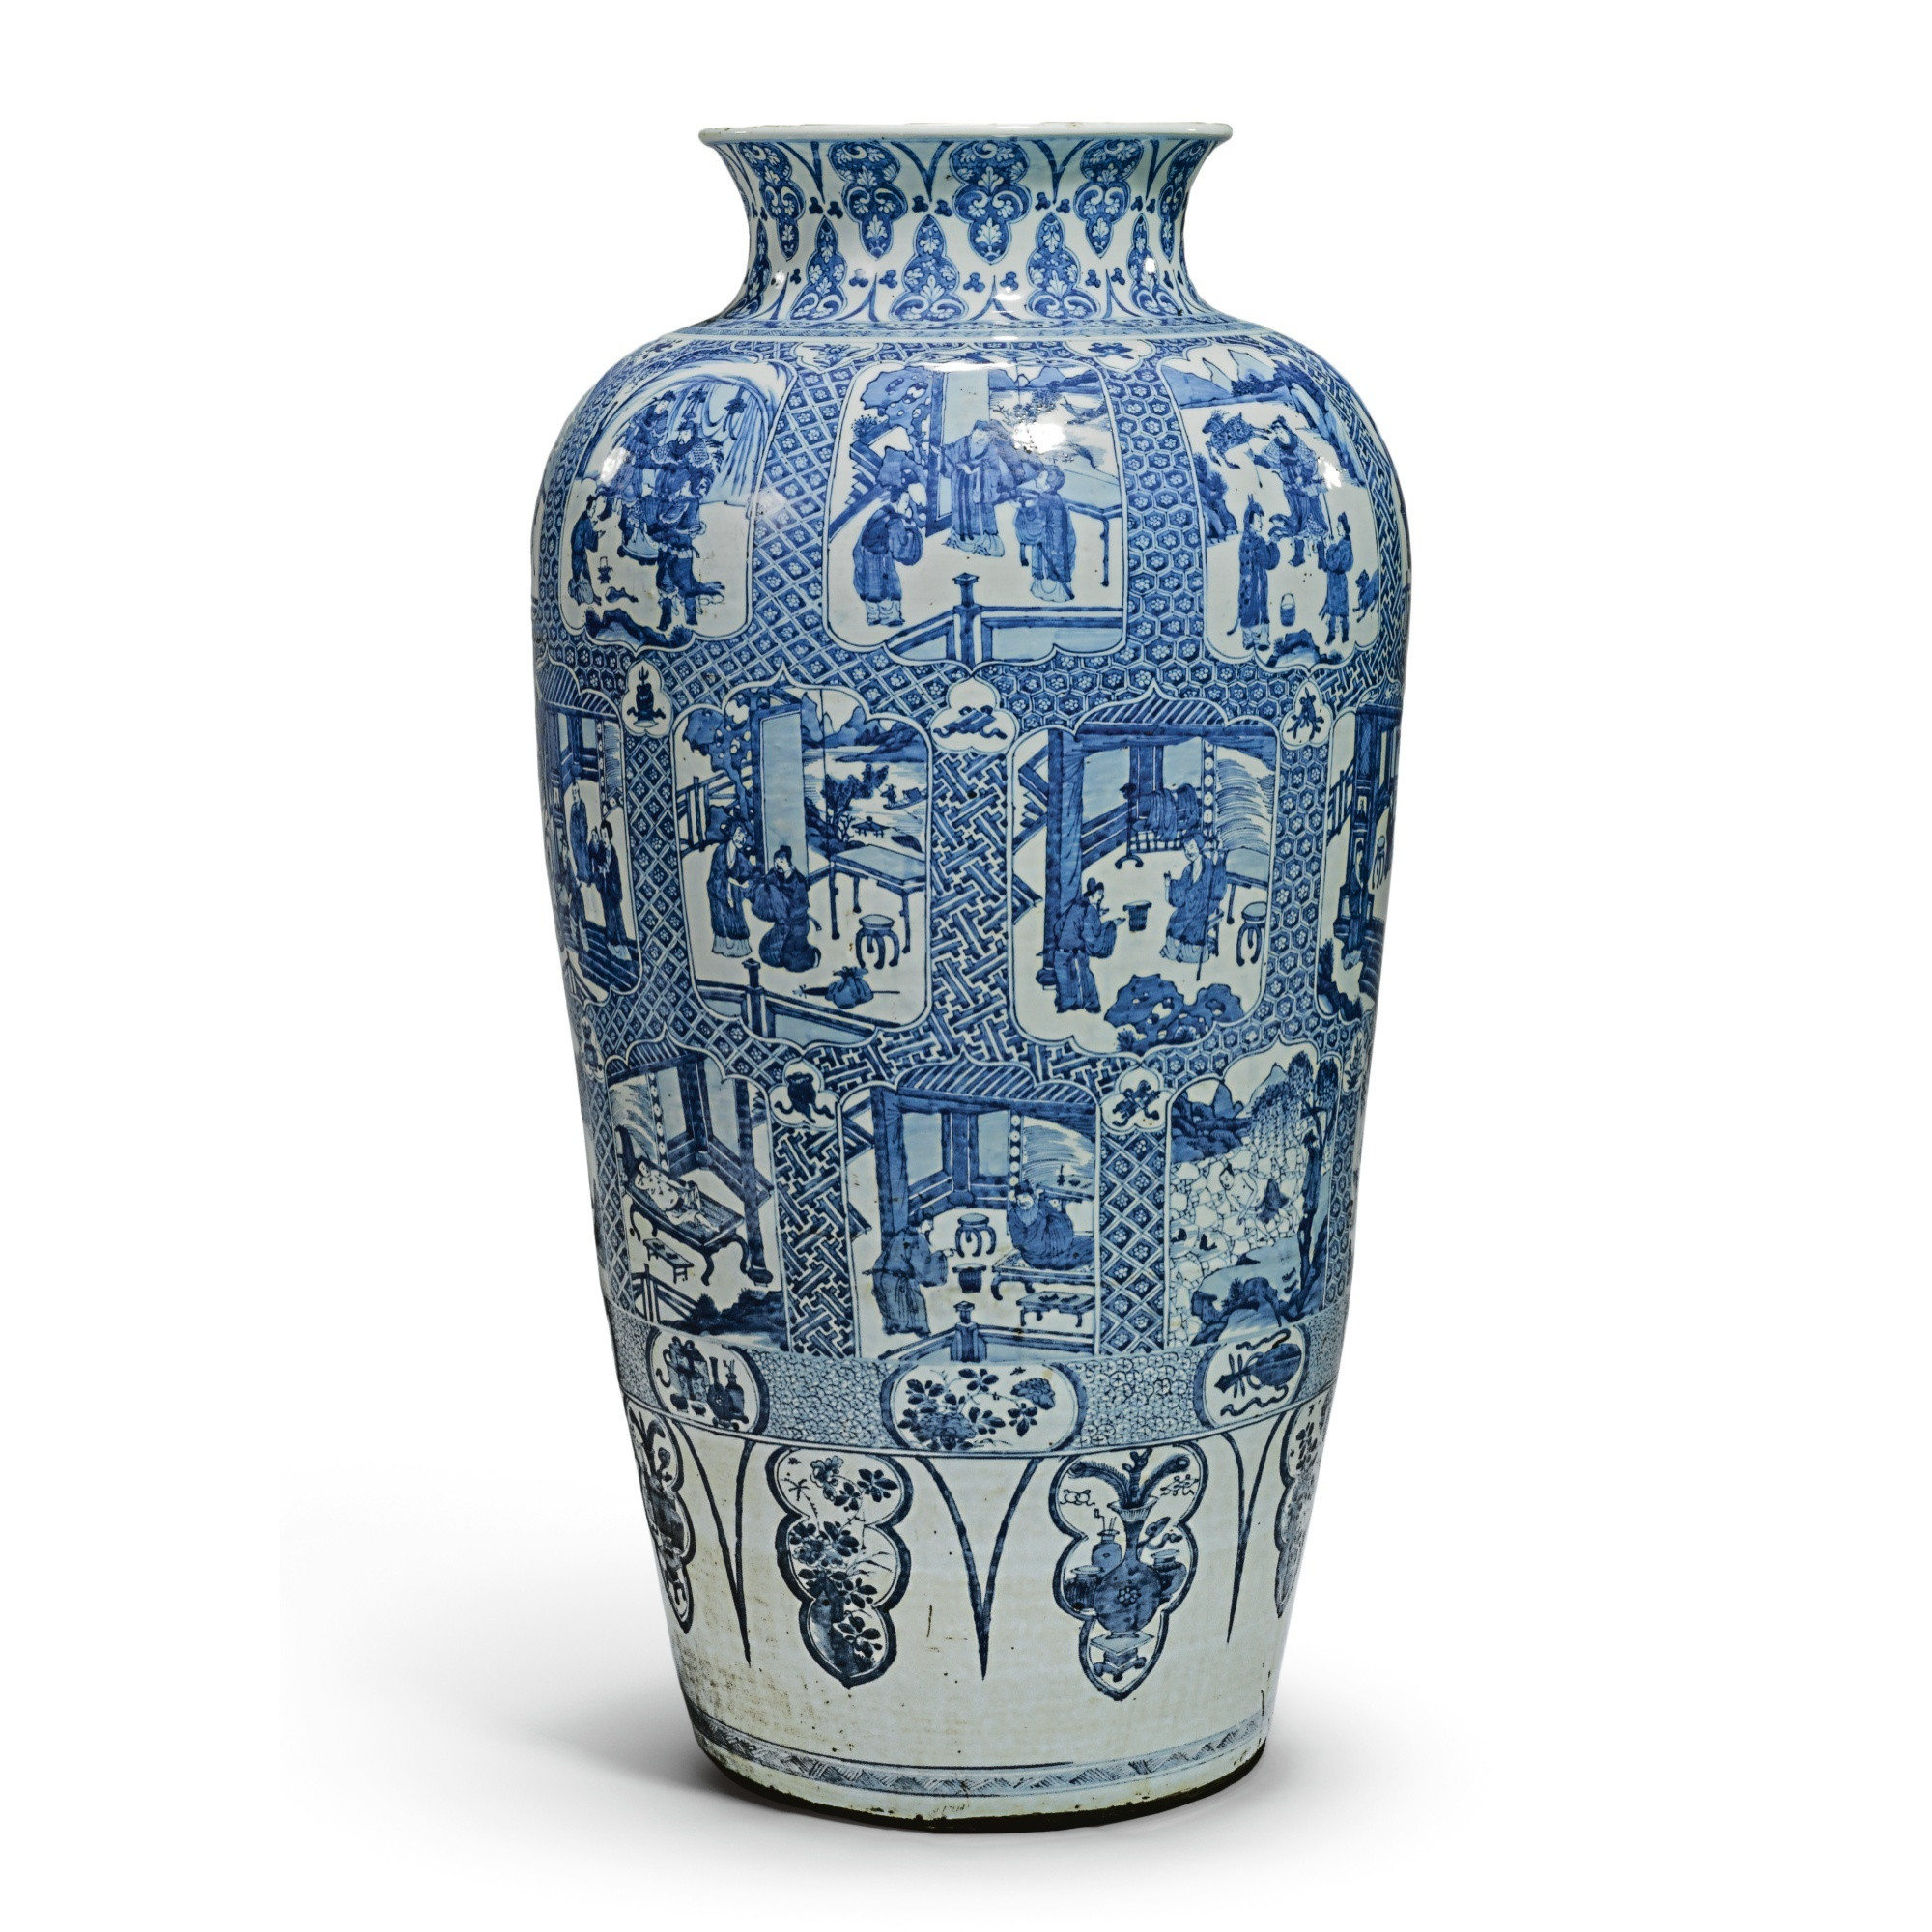 10 Awesome Large Cobalt Blue Vase 2021 free download large cobalt blue vase of a large chinese kangxi blue and white soldier vase painted with with regard to a large chinese kangxi blue and white soldier vase painted with the twenty